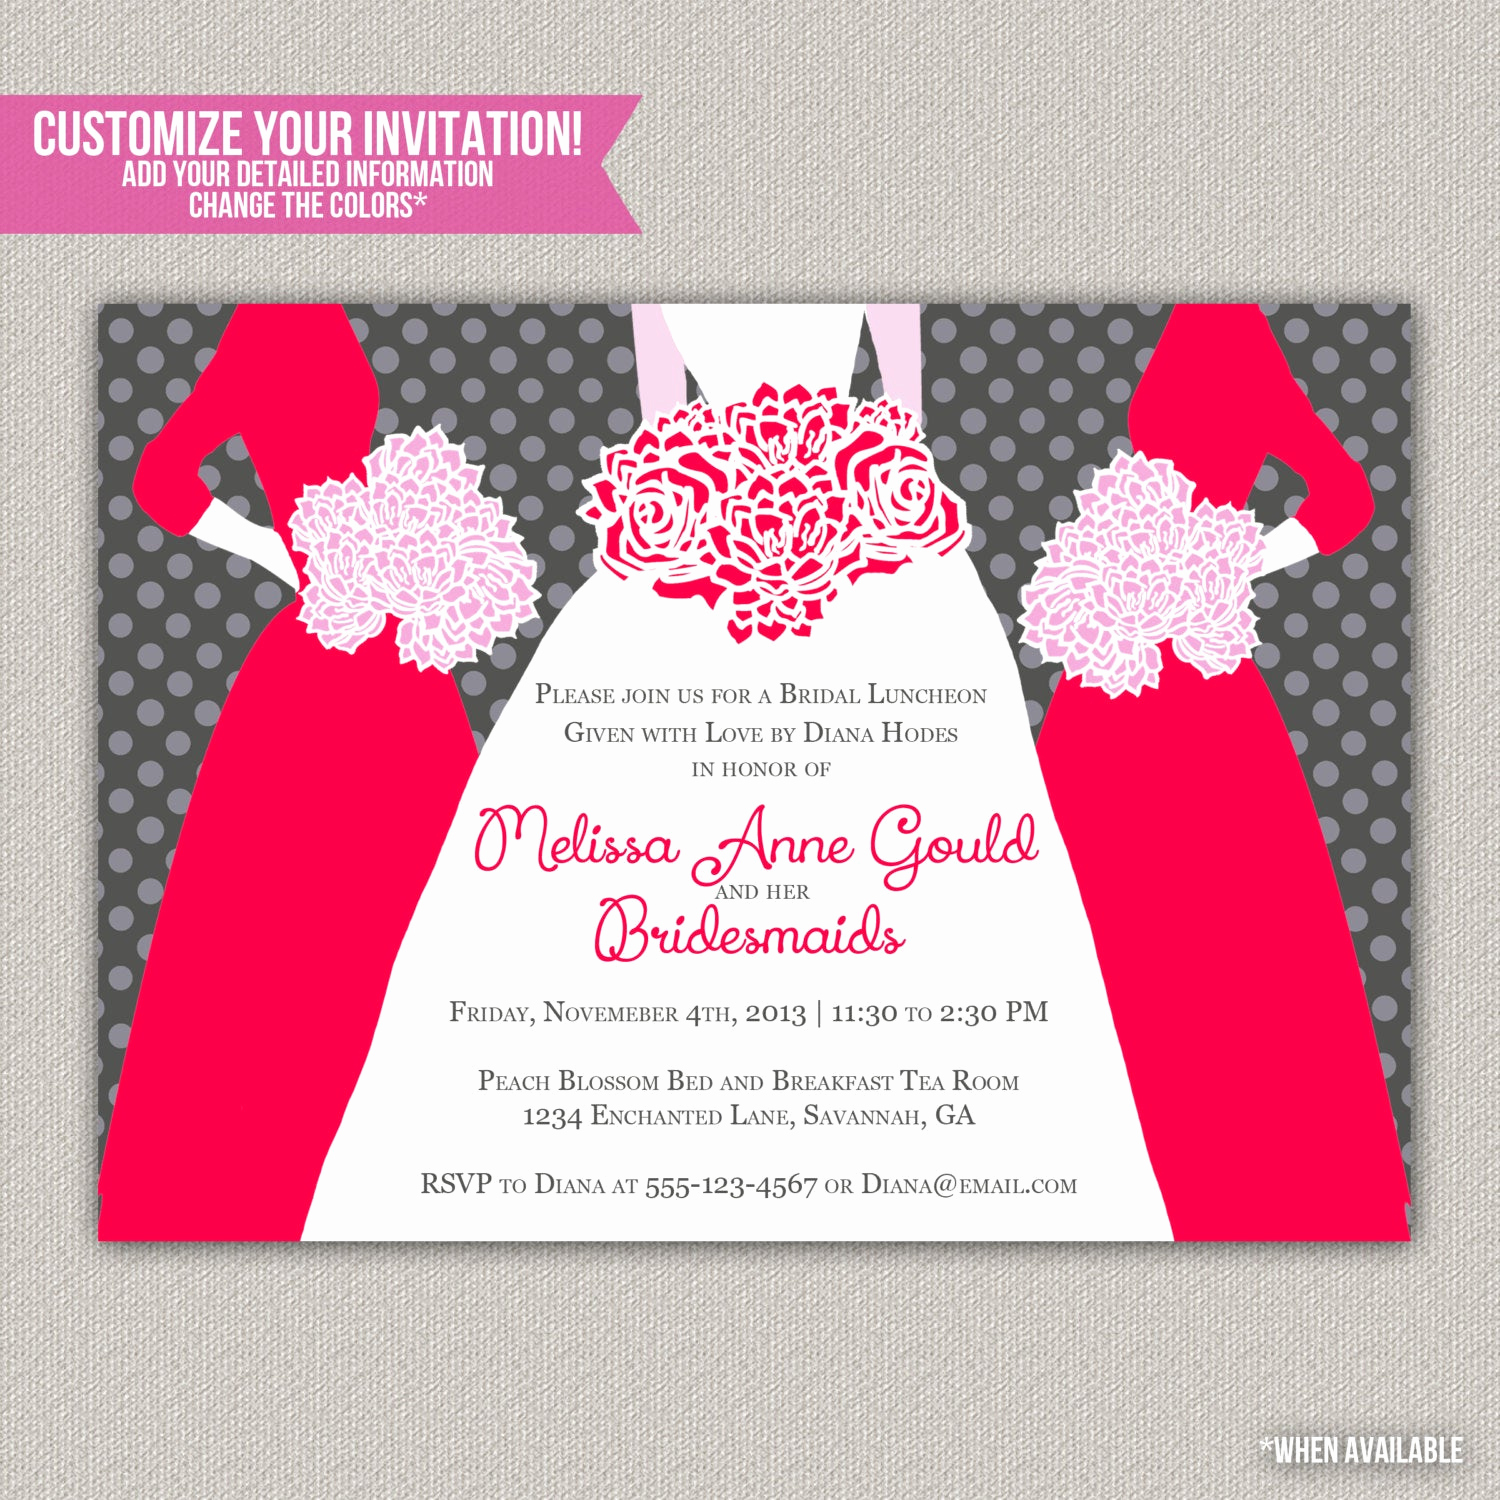 Bridesmaid Luncheon Invitation Wording Fresh Bridesmaid S Luncheon Invitation Custom by Enchanteddesigns4u